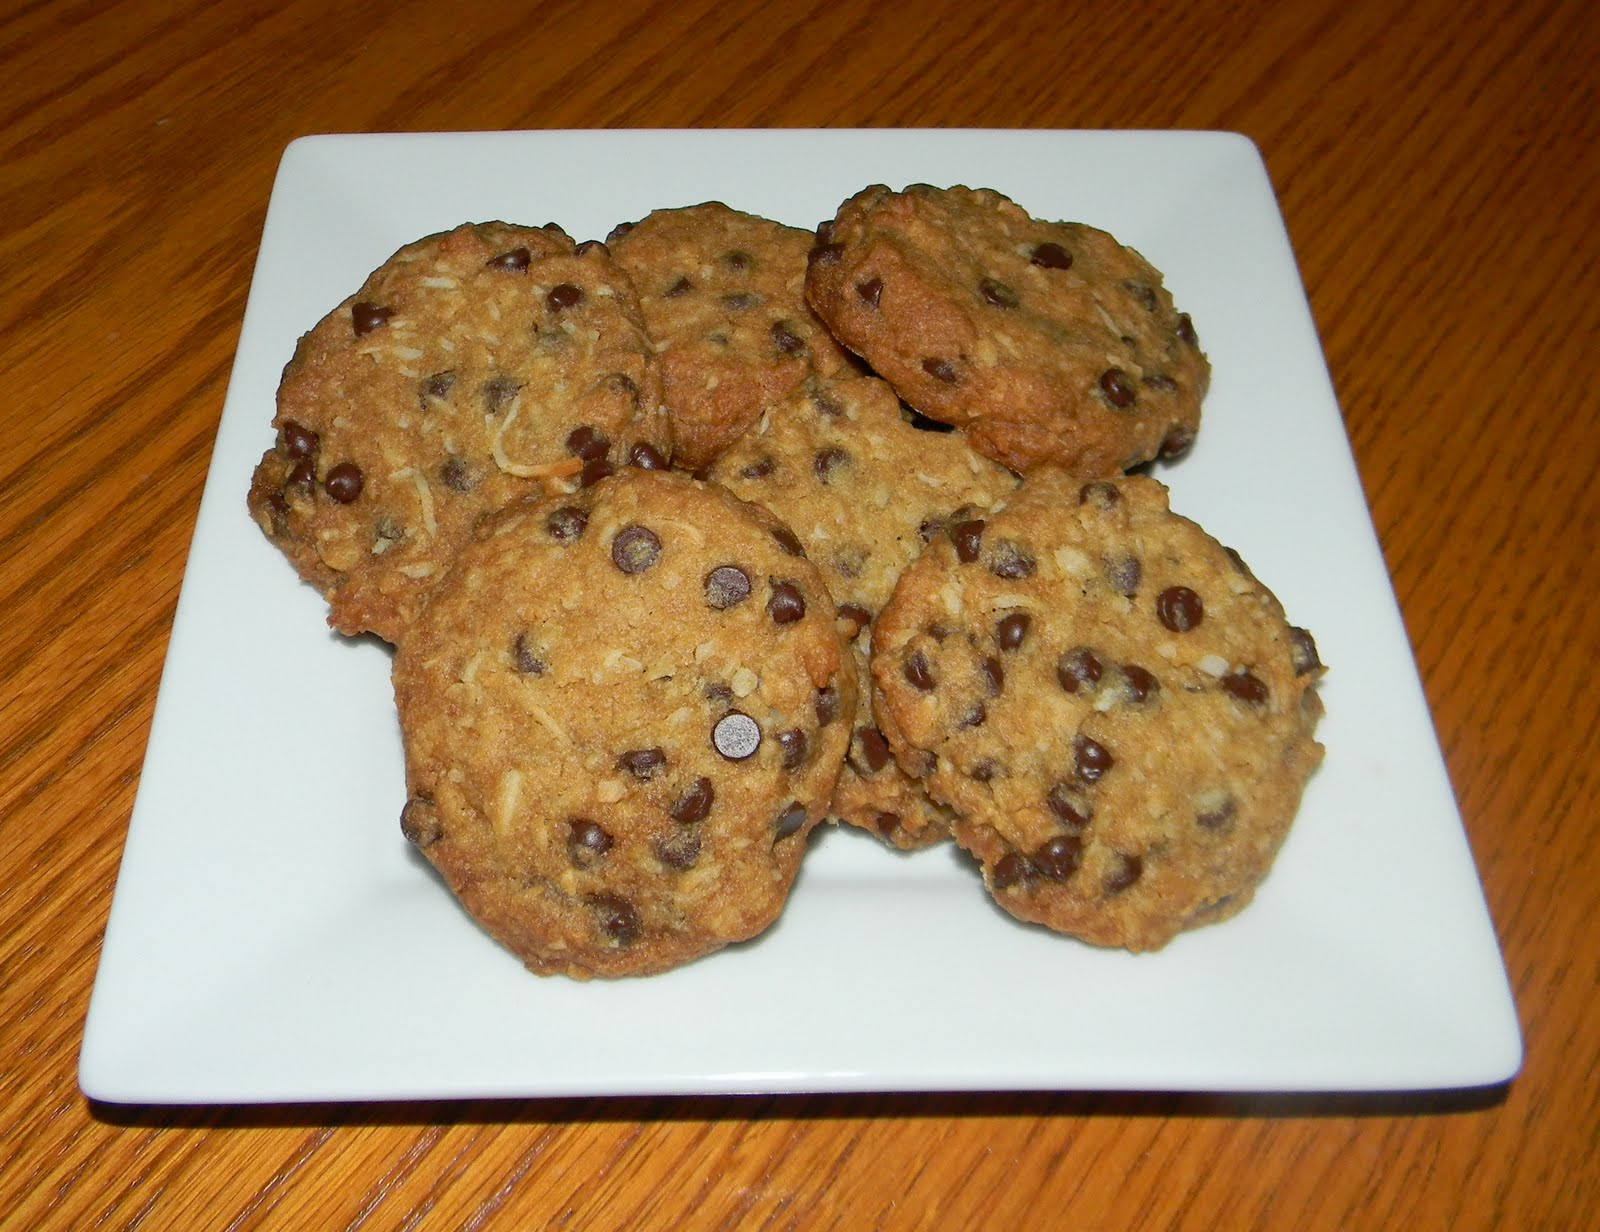 LOVING THE SWEET LIFE: Coconut & Chocolate Chip Cookies